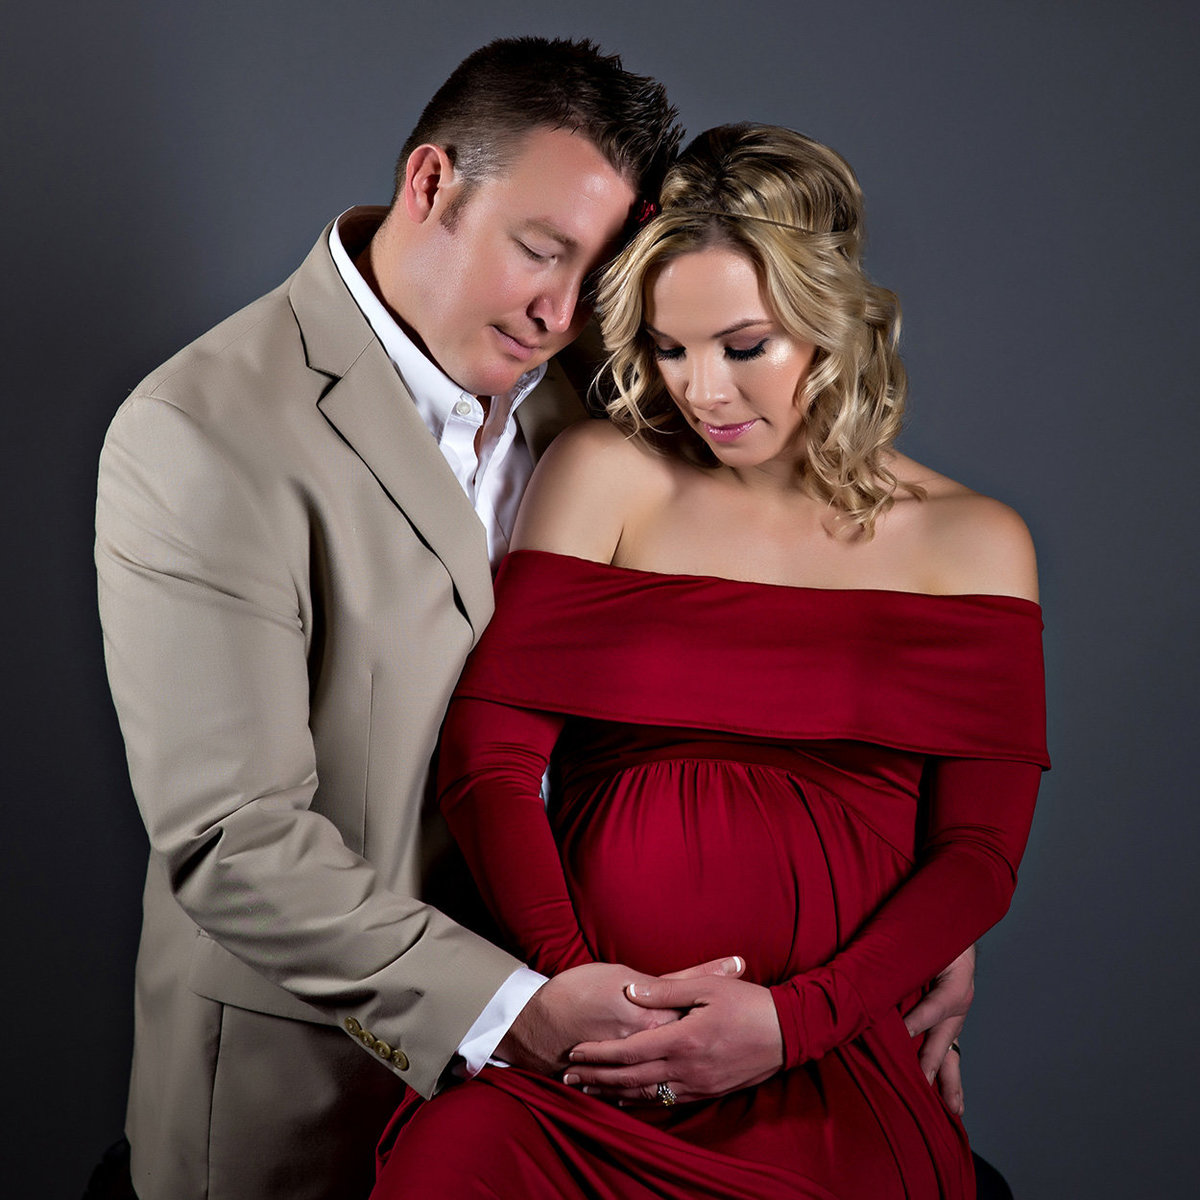 lansing mi maternity photographer